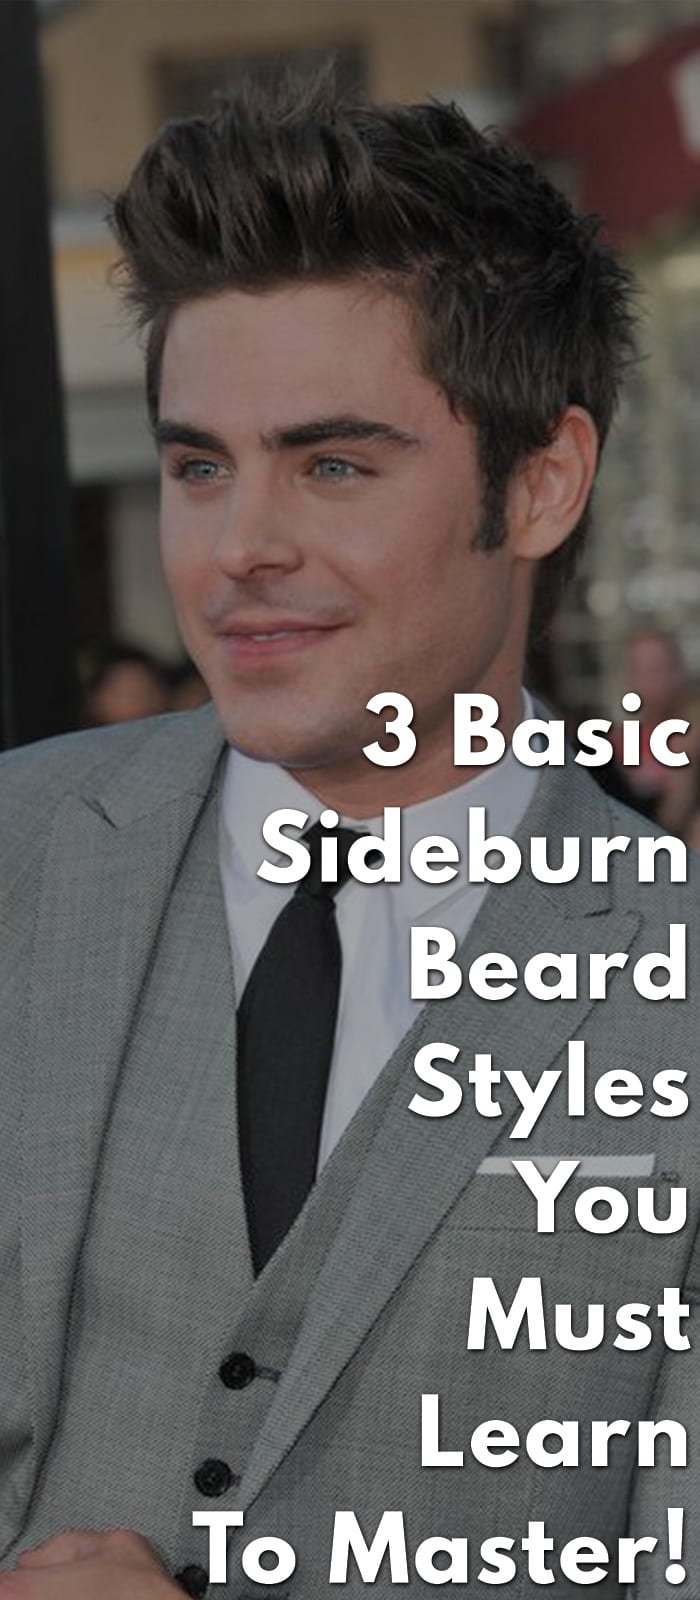 3-Basic-Sideburn-Beard-Styles-You-Must-Learn-To-Master!